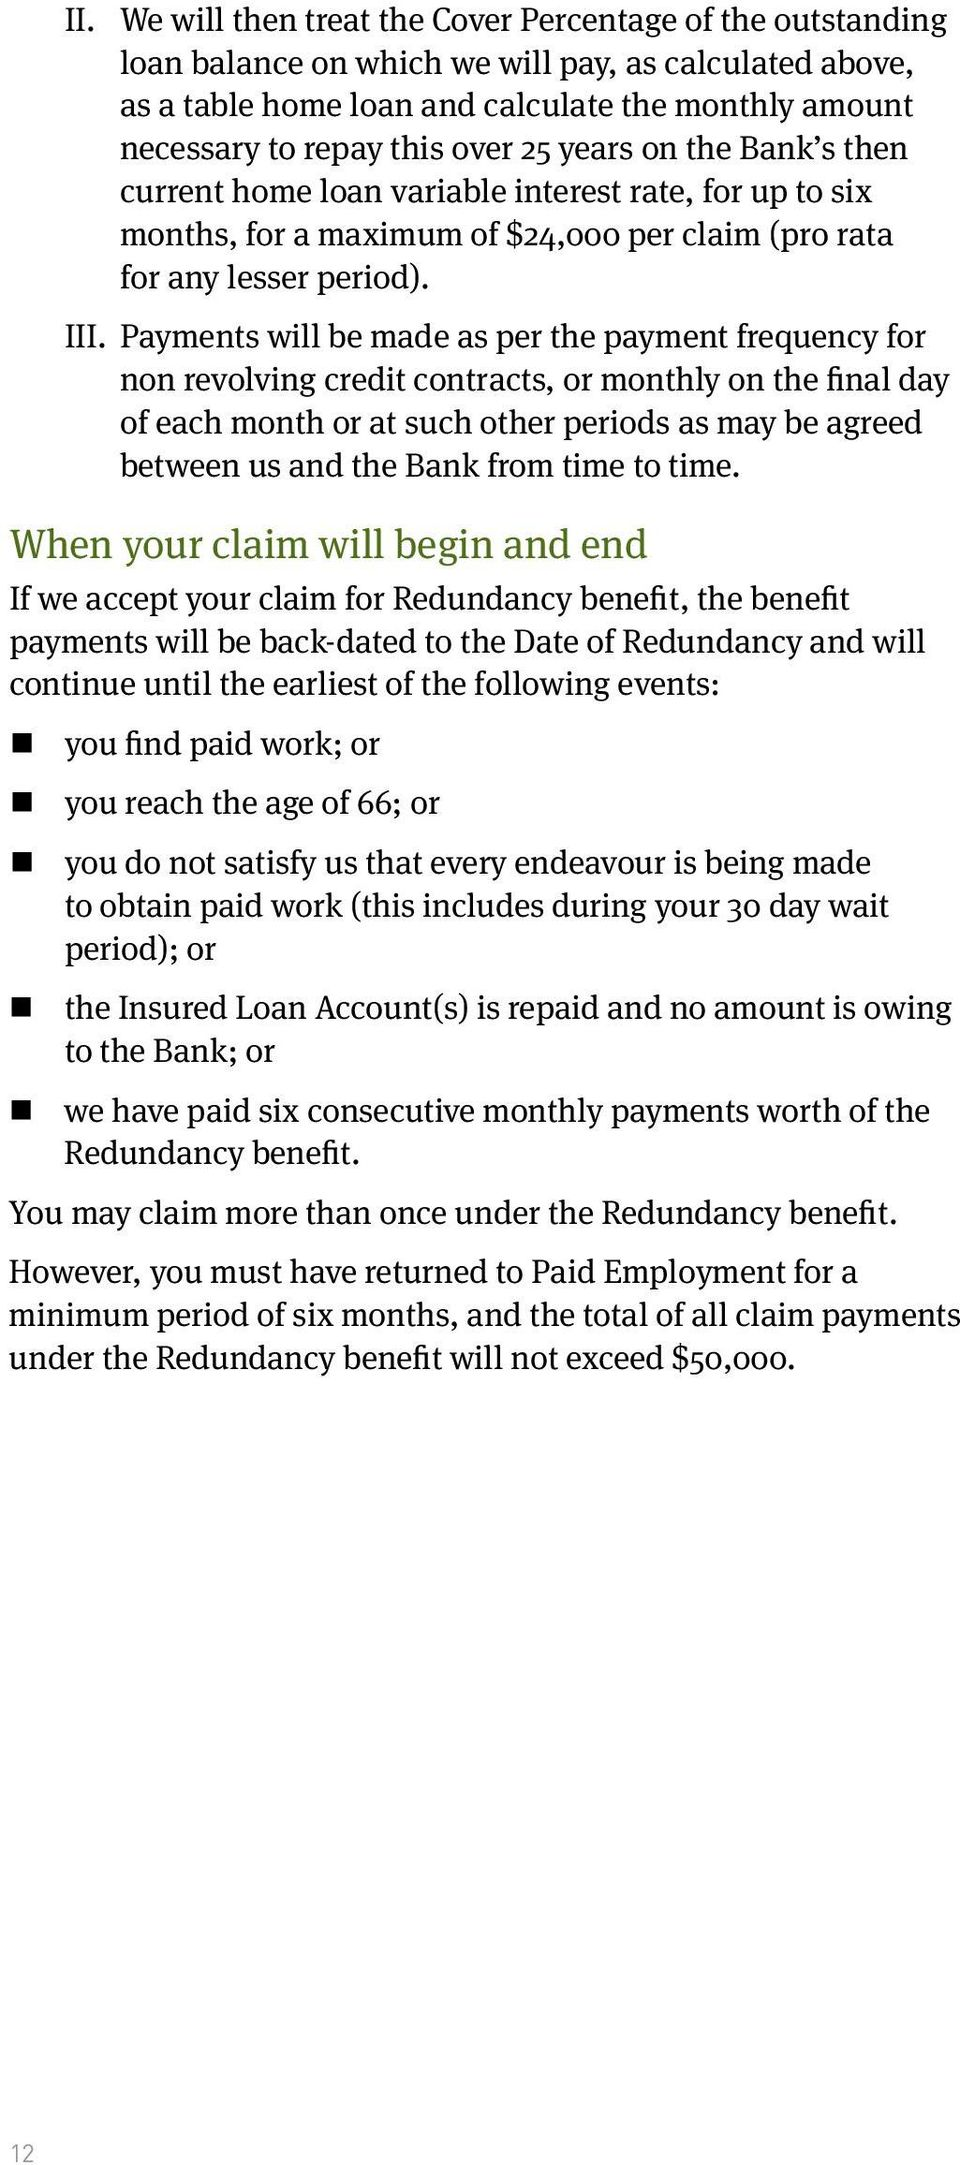 Payments will be made as per the payment frequency for non revolving credit contracts, or monthly on the final day of each month or at such other periods as may be agreed between us and the Bank from